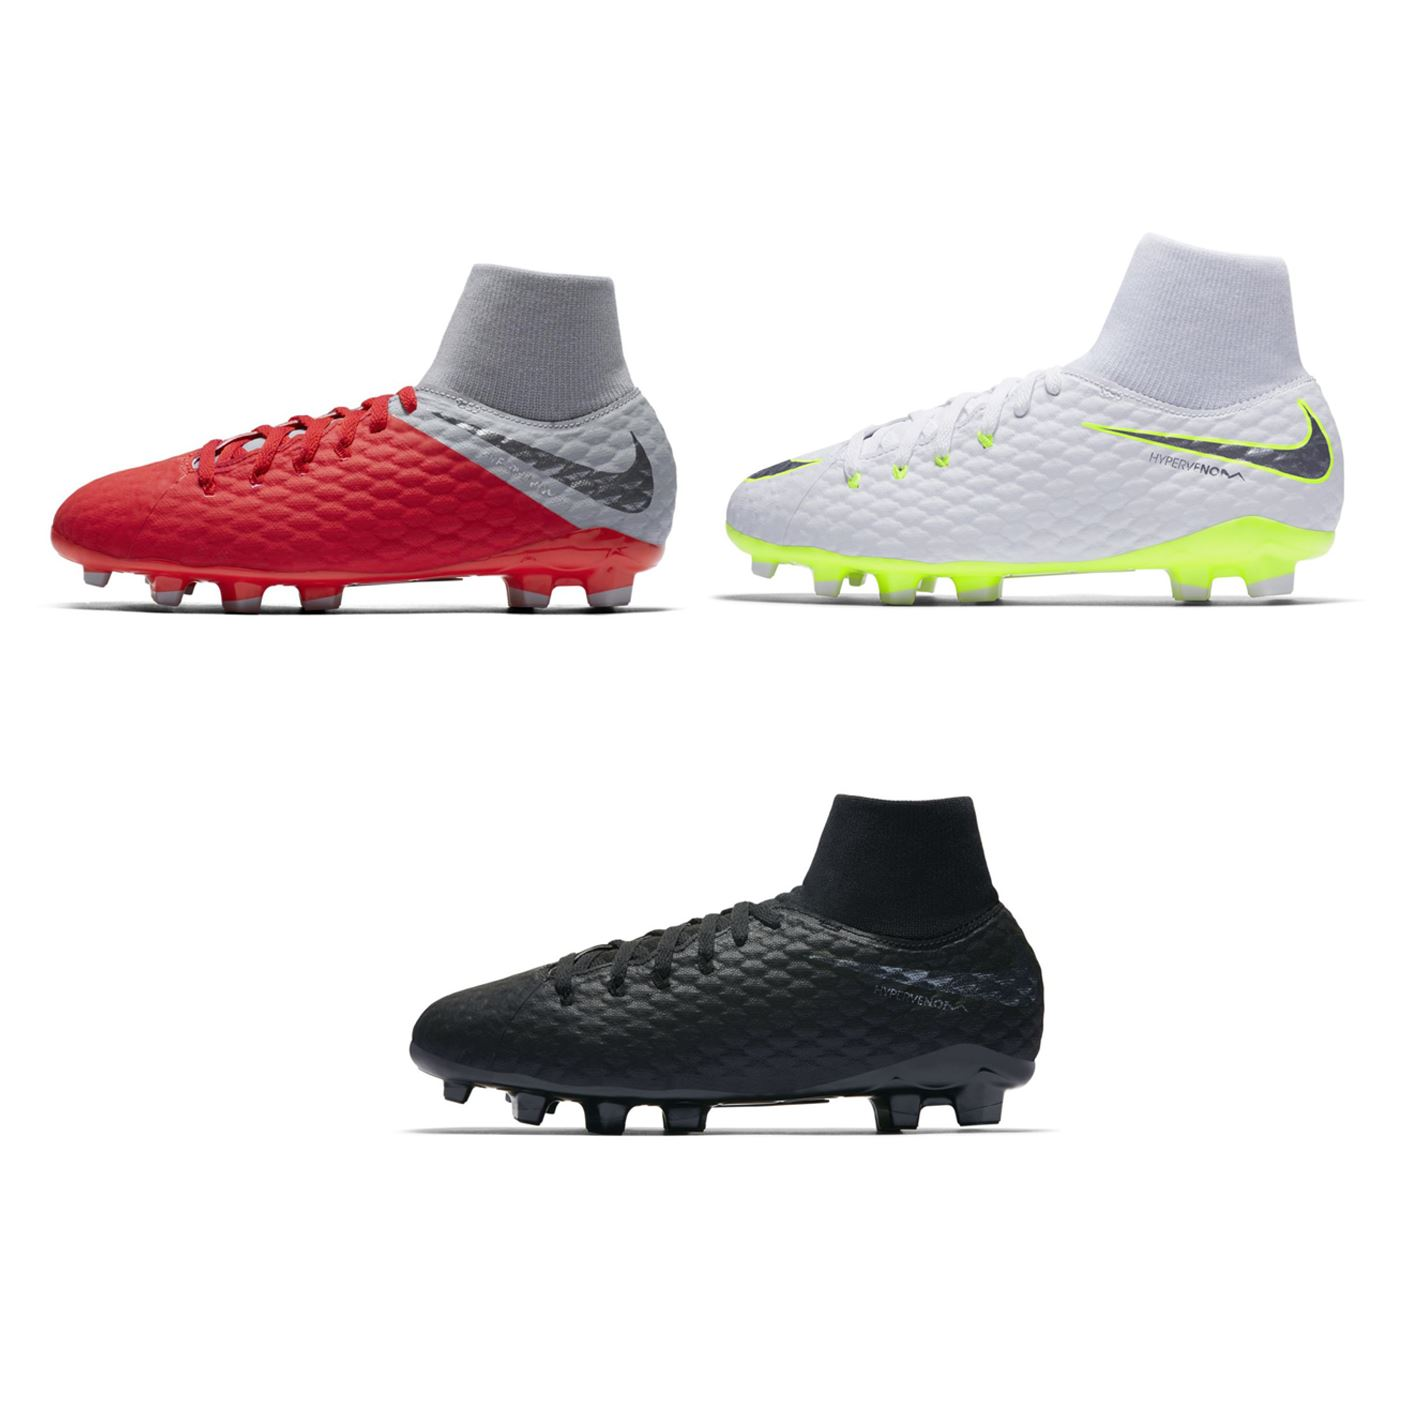 4e55b135a45 ... Nike Hypervenom Phantom Academy Firm Ground Football Boots Juniors  Soccer Cleats ...